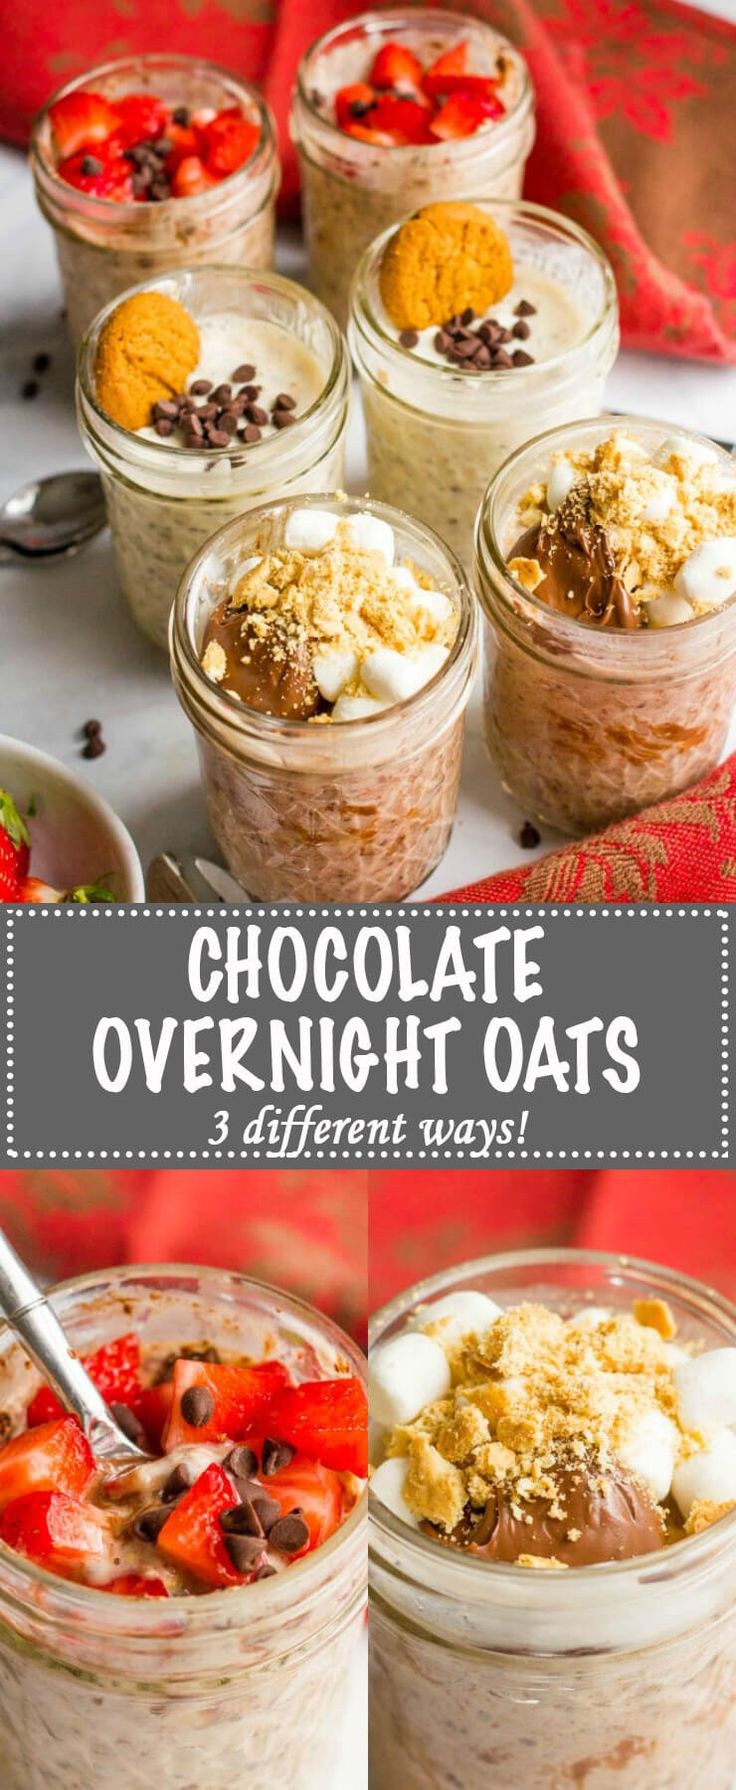 Chocolate overnight oats made 3 ways: brownie batter, oatmeal chocolate chip cookie and s'mores! Perfect for a sweet morning treat or a late-night snack! | www.familyfoodonthetable.com